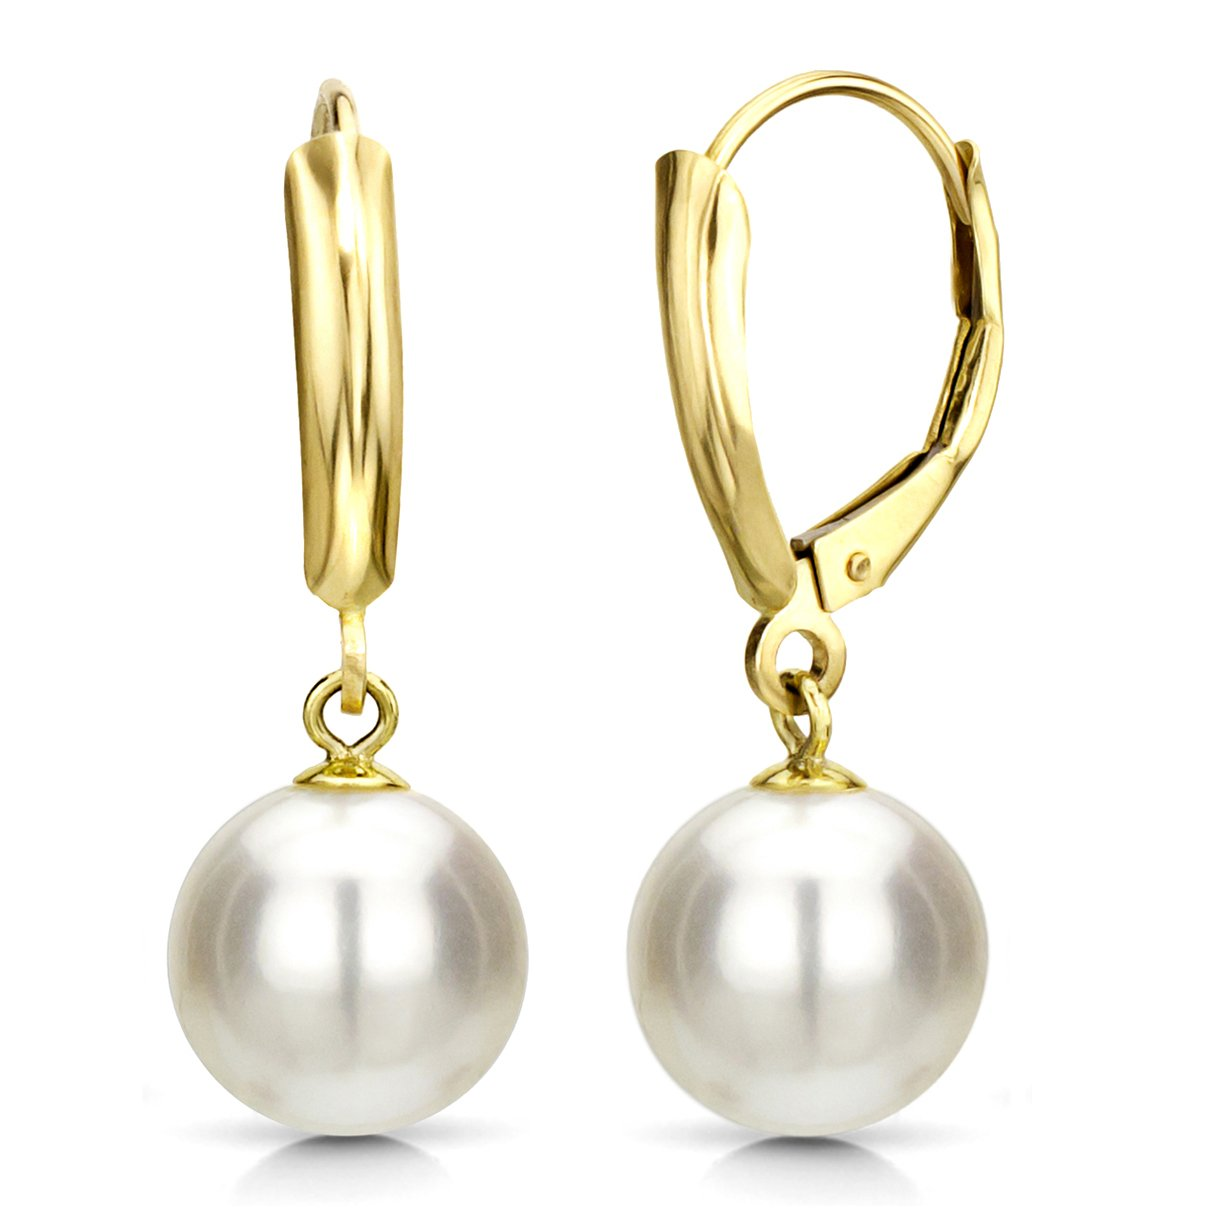 White Freshwater Cultured Pearl Earrings Dangle Leverback 14K Yellow Gold Wedding Gift 7-7.5mm